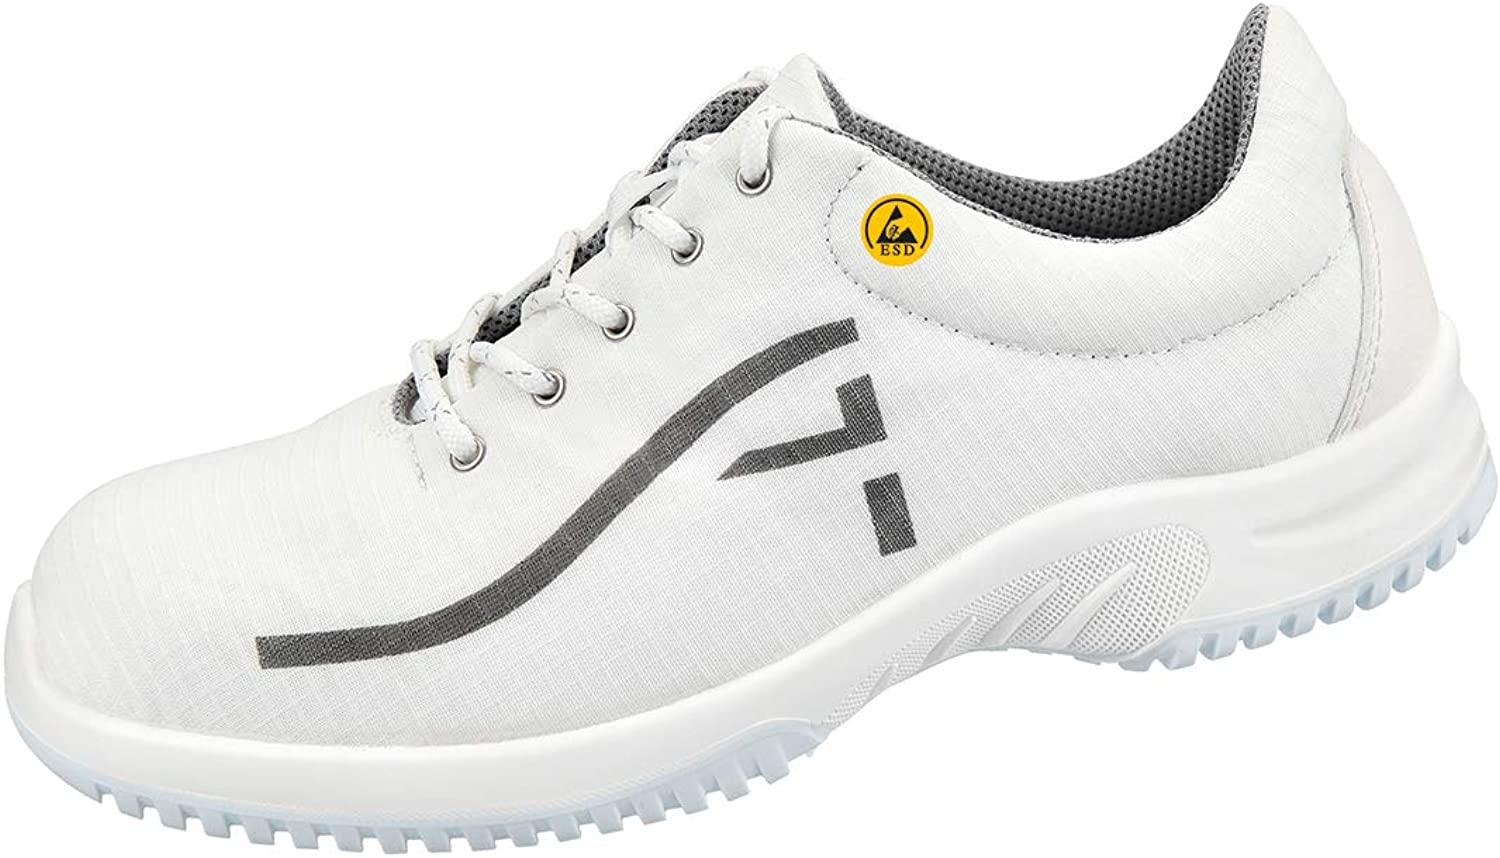 ABEBA ESD 36736 Work shoes Uni 6 Low shoes Sporty with ESD Labelling